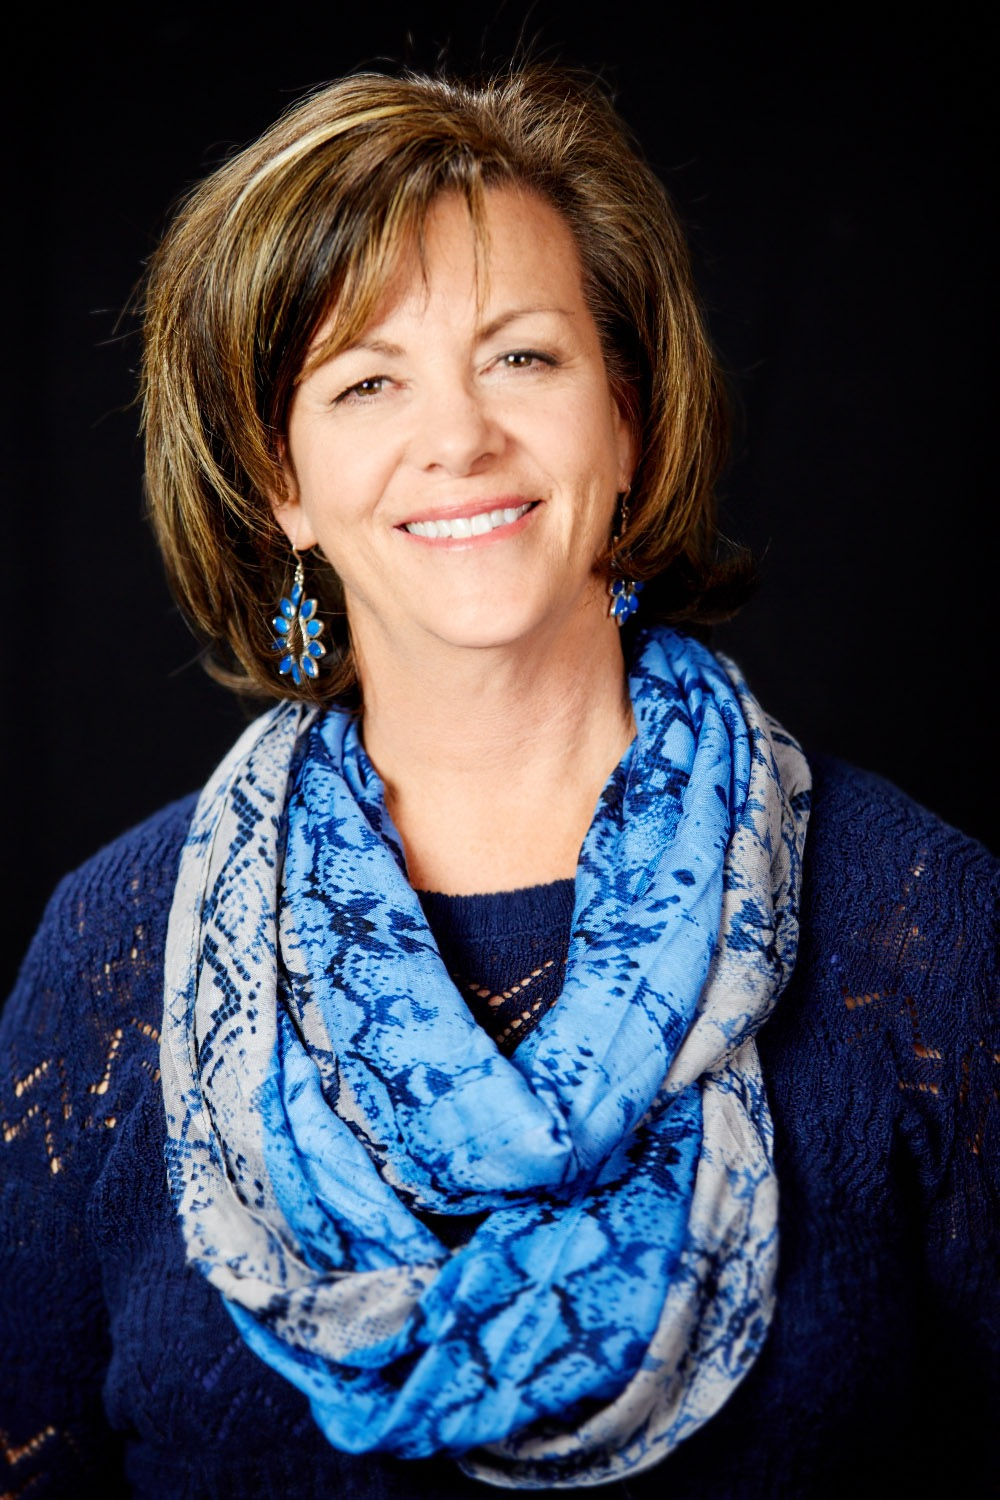 Cindy Gillespie, Advancing Women Executives Leader